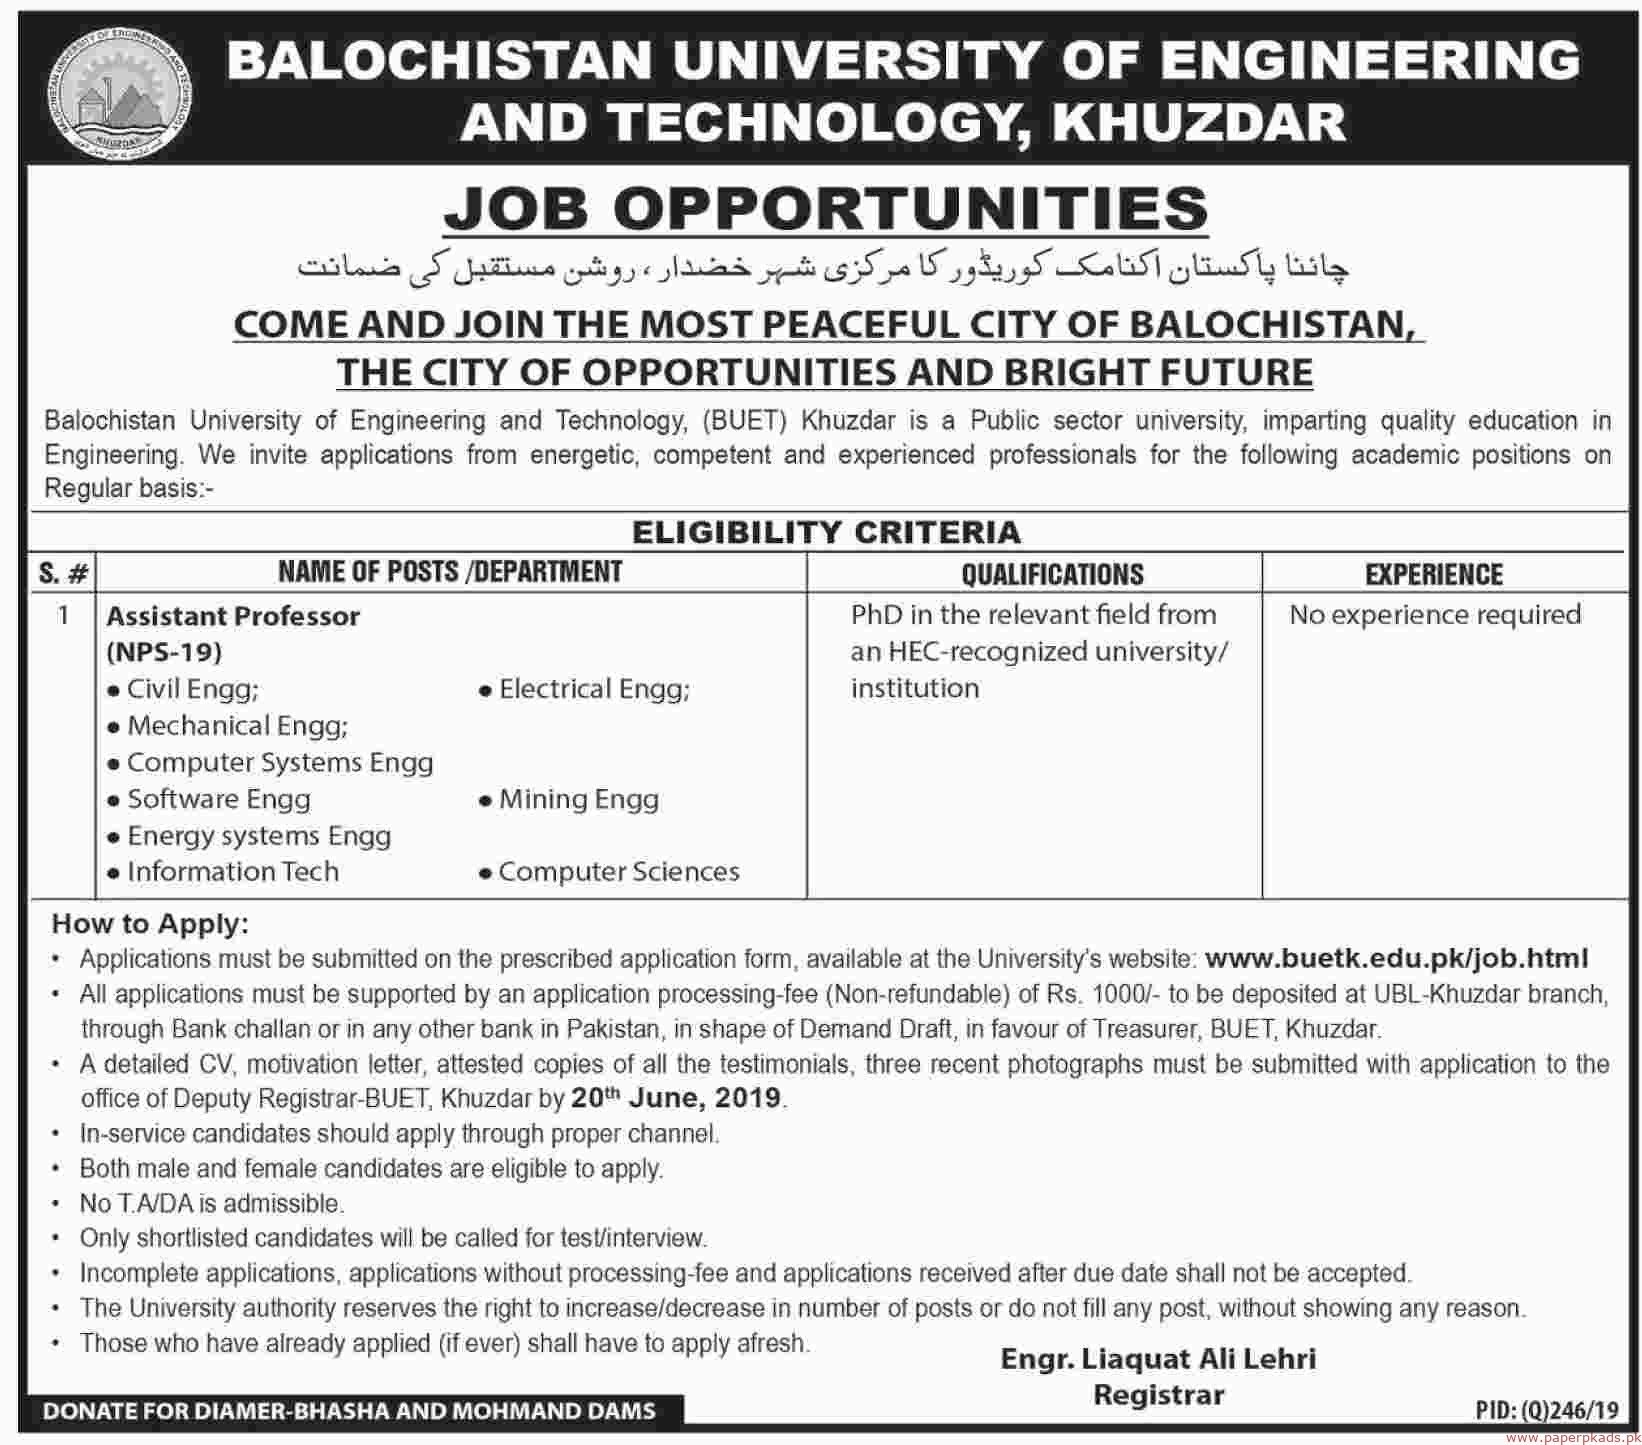 Balochistan University of Engineering and Technology Khuzdar Jobs 2019 Latest